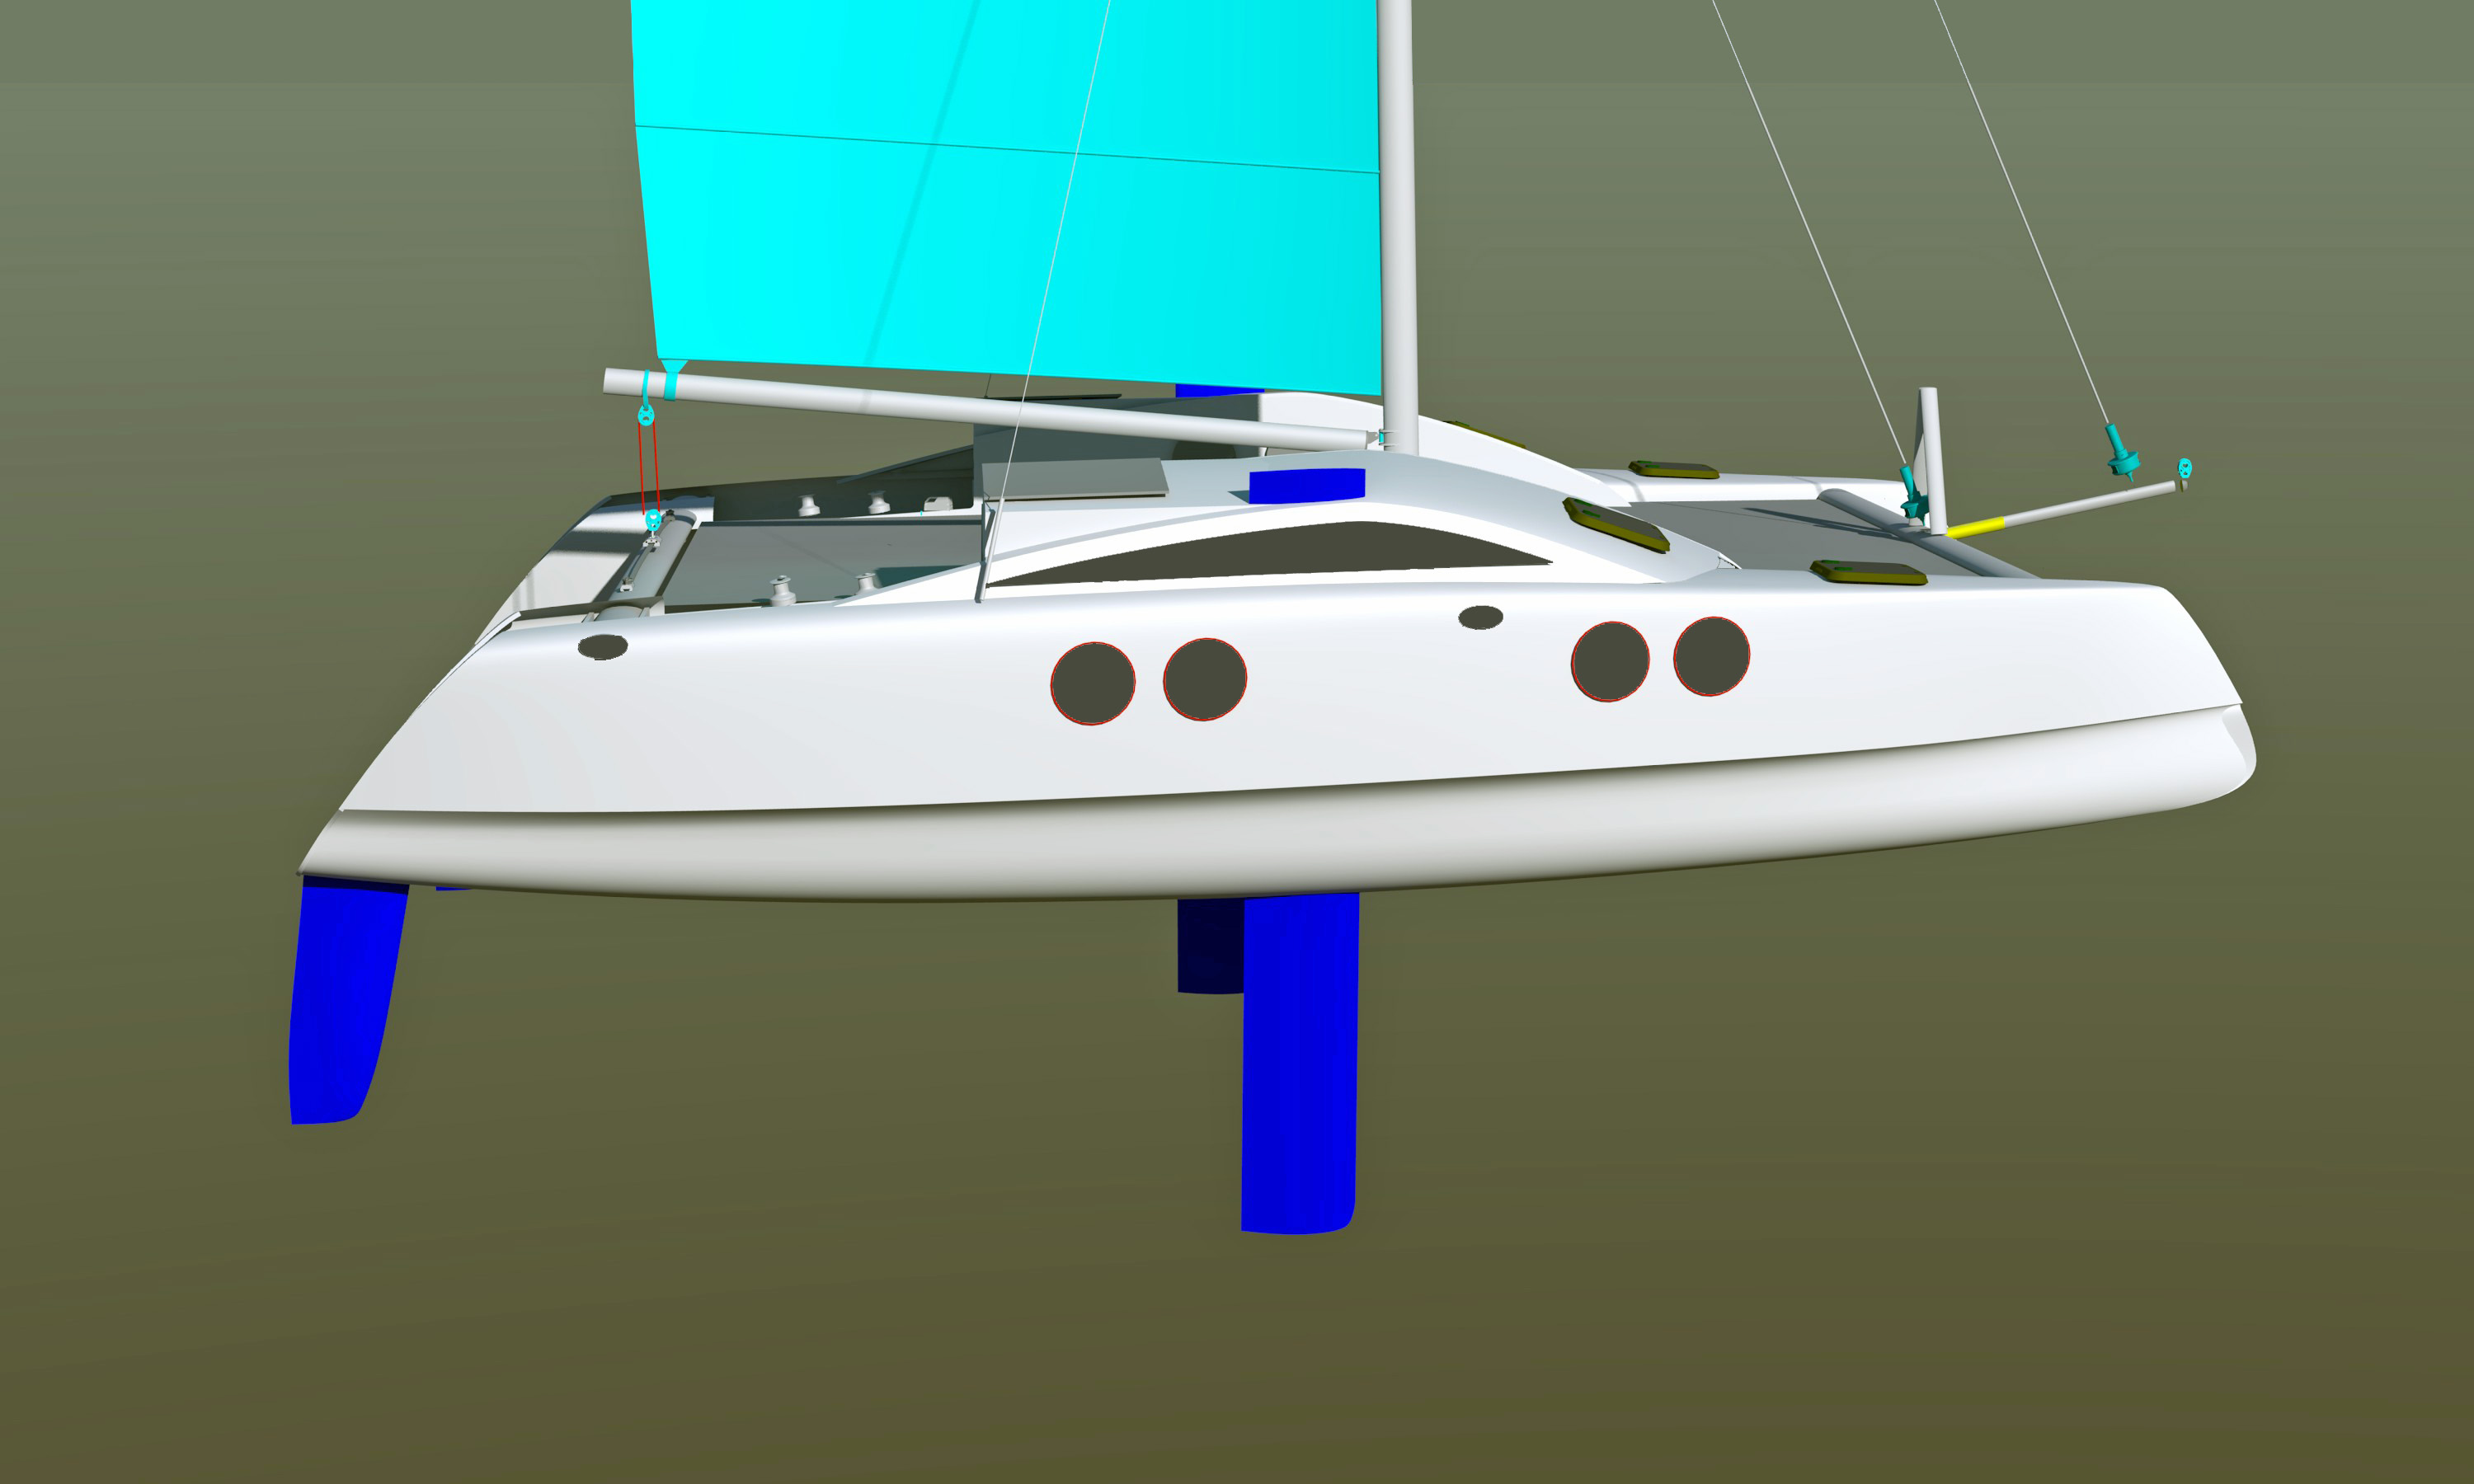 Power catamaran designs - A Magazine Asked Me To Send Them A Design So It Was An Excuse To Tighten Up The Graphics Of The 27 Cat Upgrade Complete Study Plans Are Ready